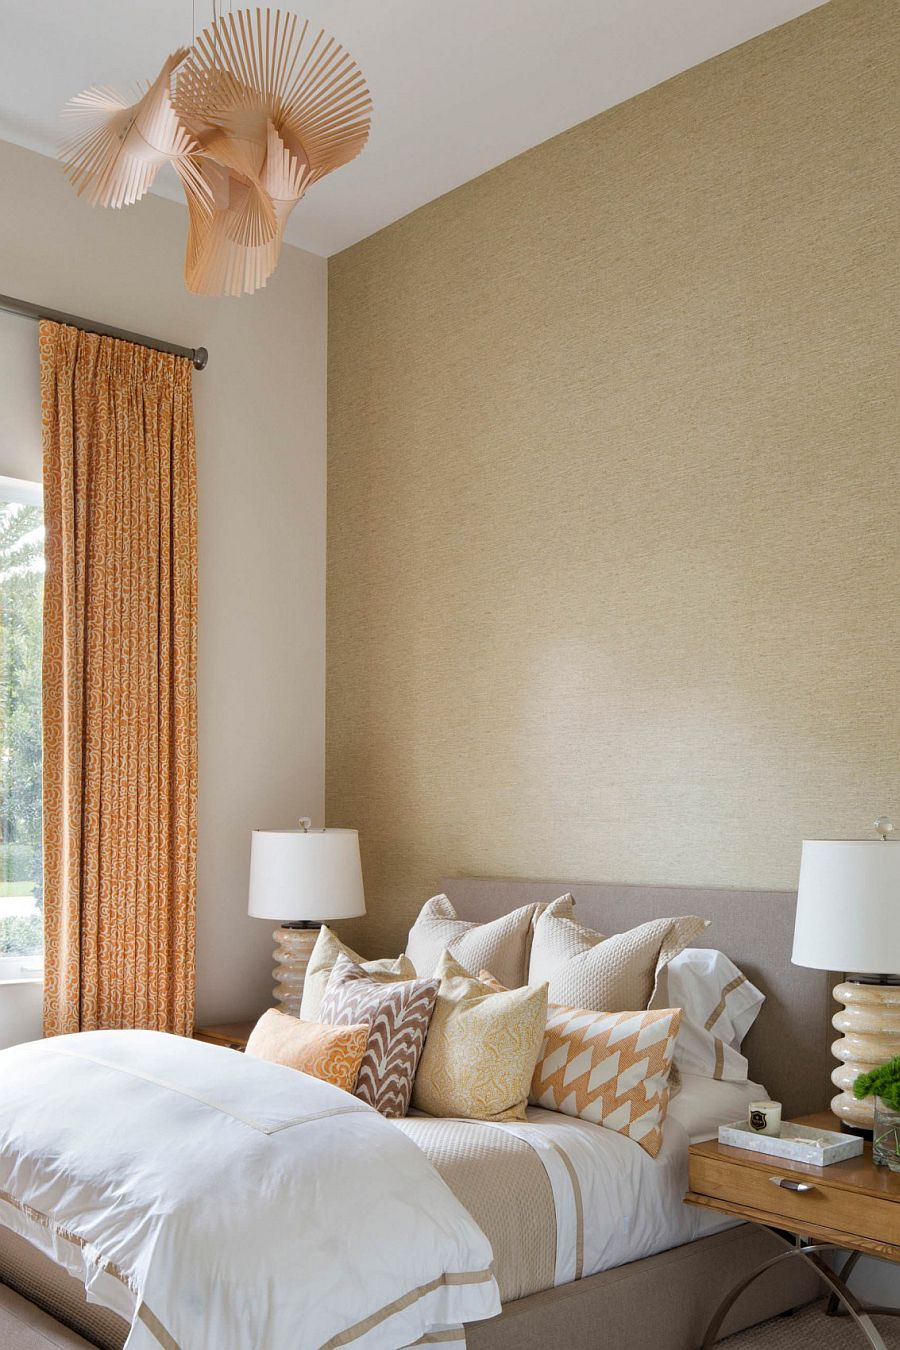 Pops of coral bring elegant charm to the calming bedroom